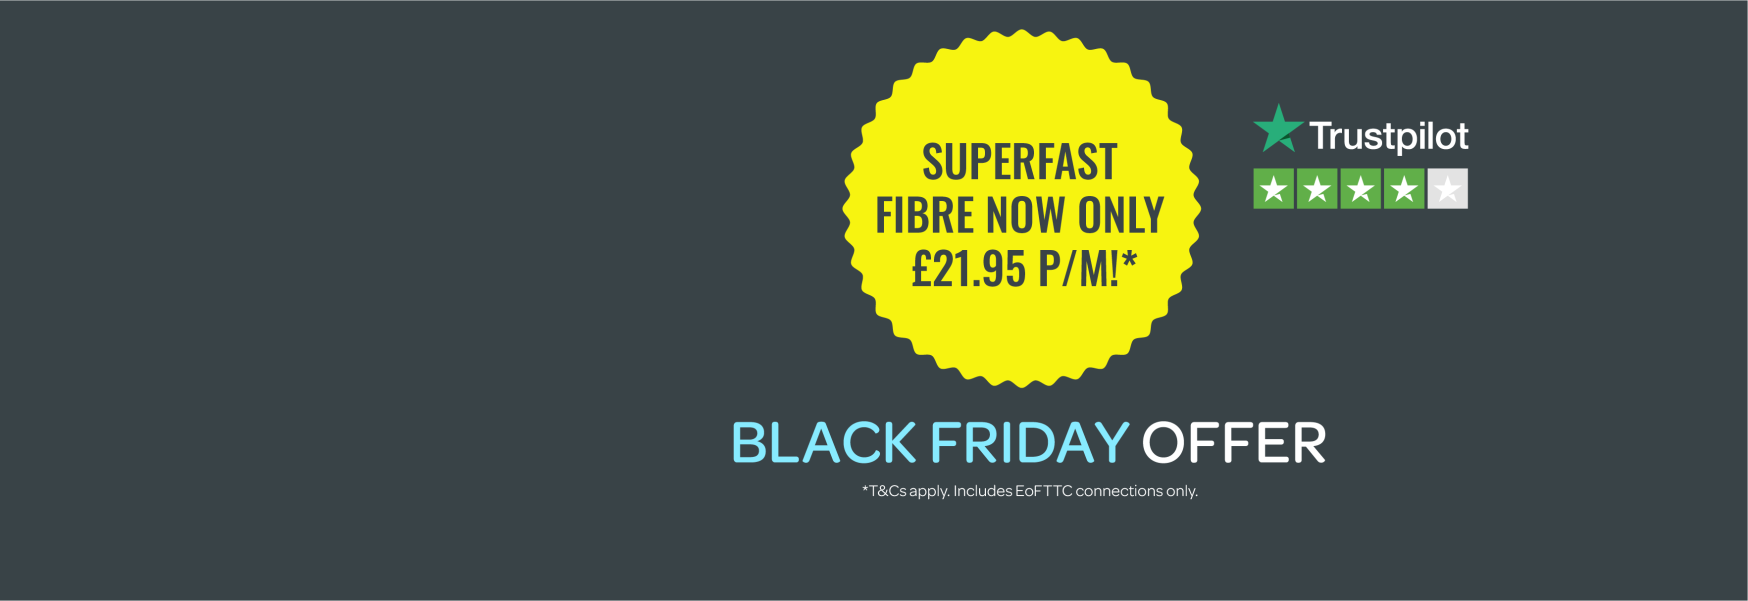 Superfast Fibre now only £21.95!